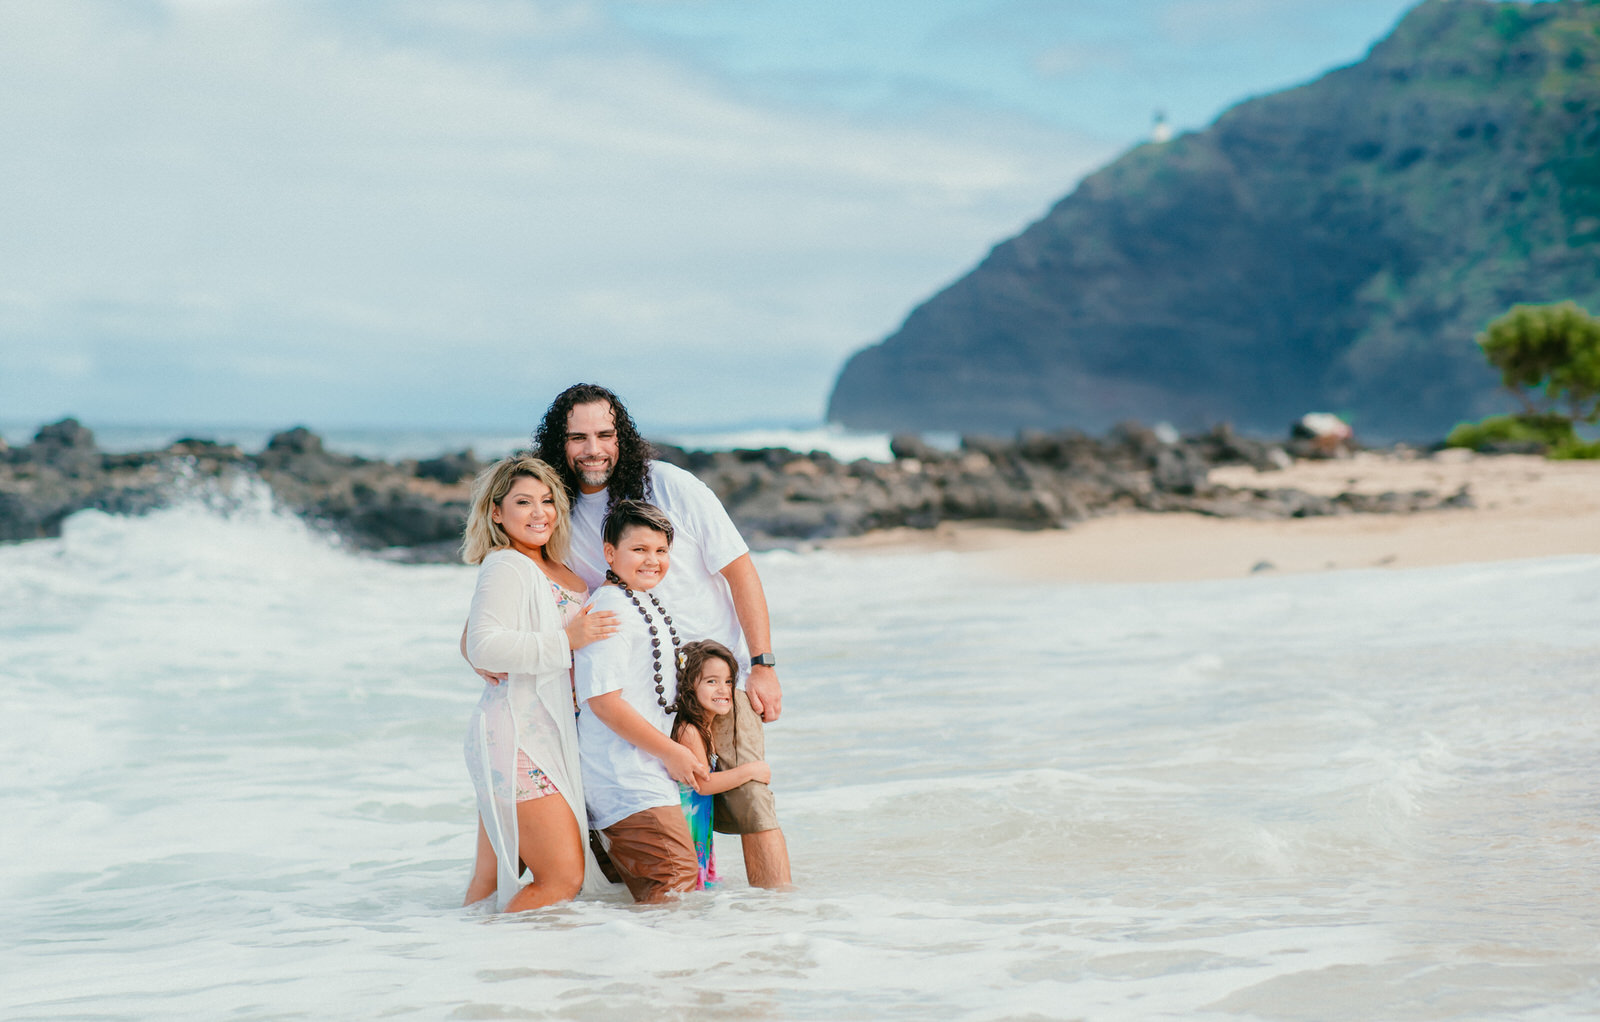 Best Beach in Hawaii - Oahu Family Photorapher - Ketino Photography -1.jpg